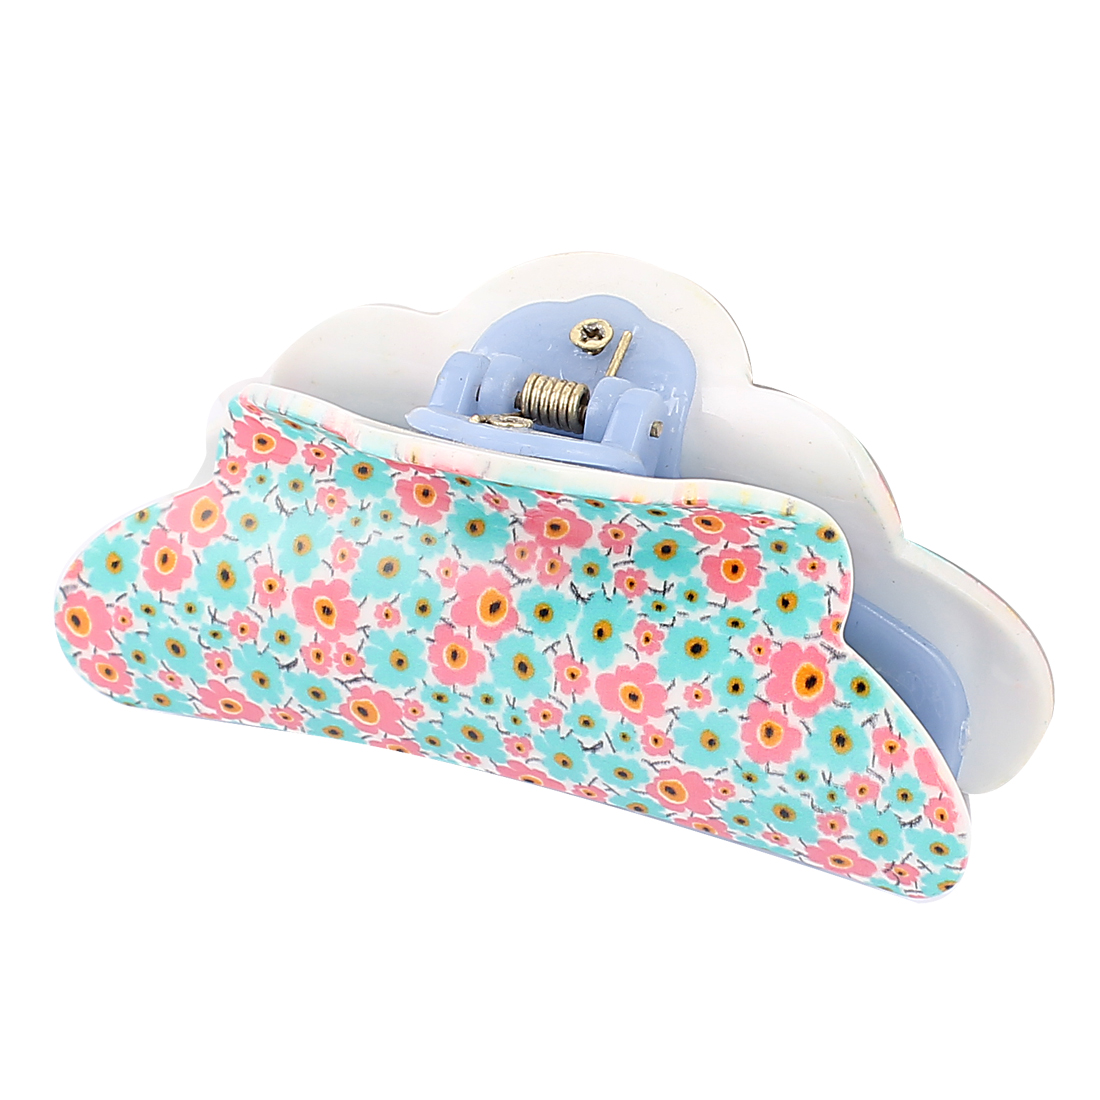 Women Hairstyle Toothed Spring Loaded Teal Pink Flower Print Plastic Hairclip Hairclaw Hair Claw Clip Blue